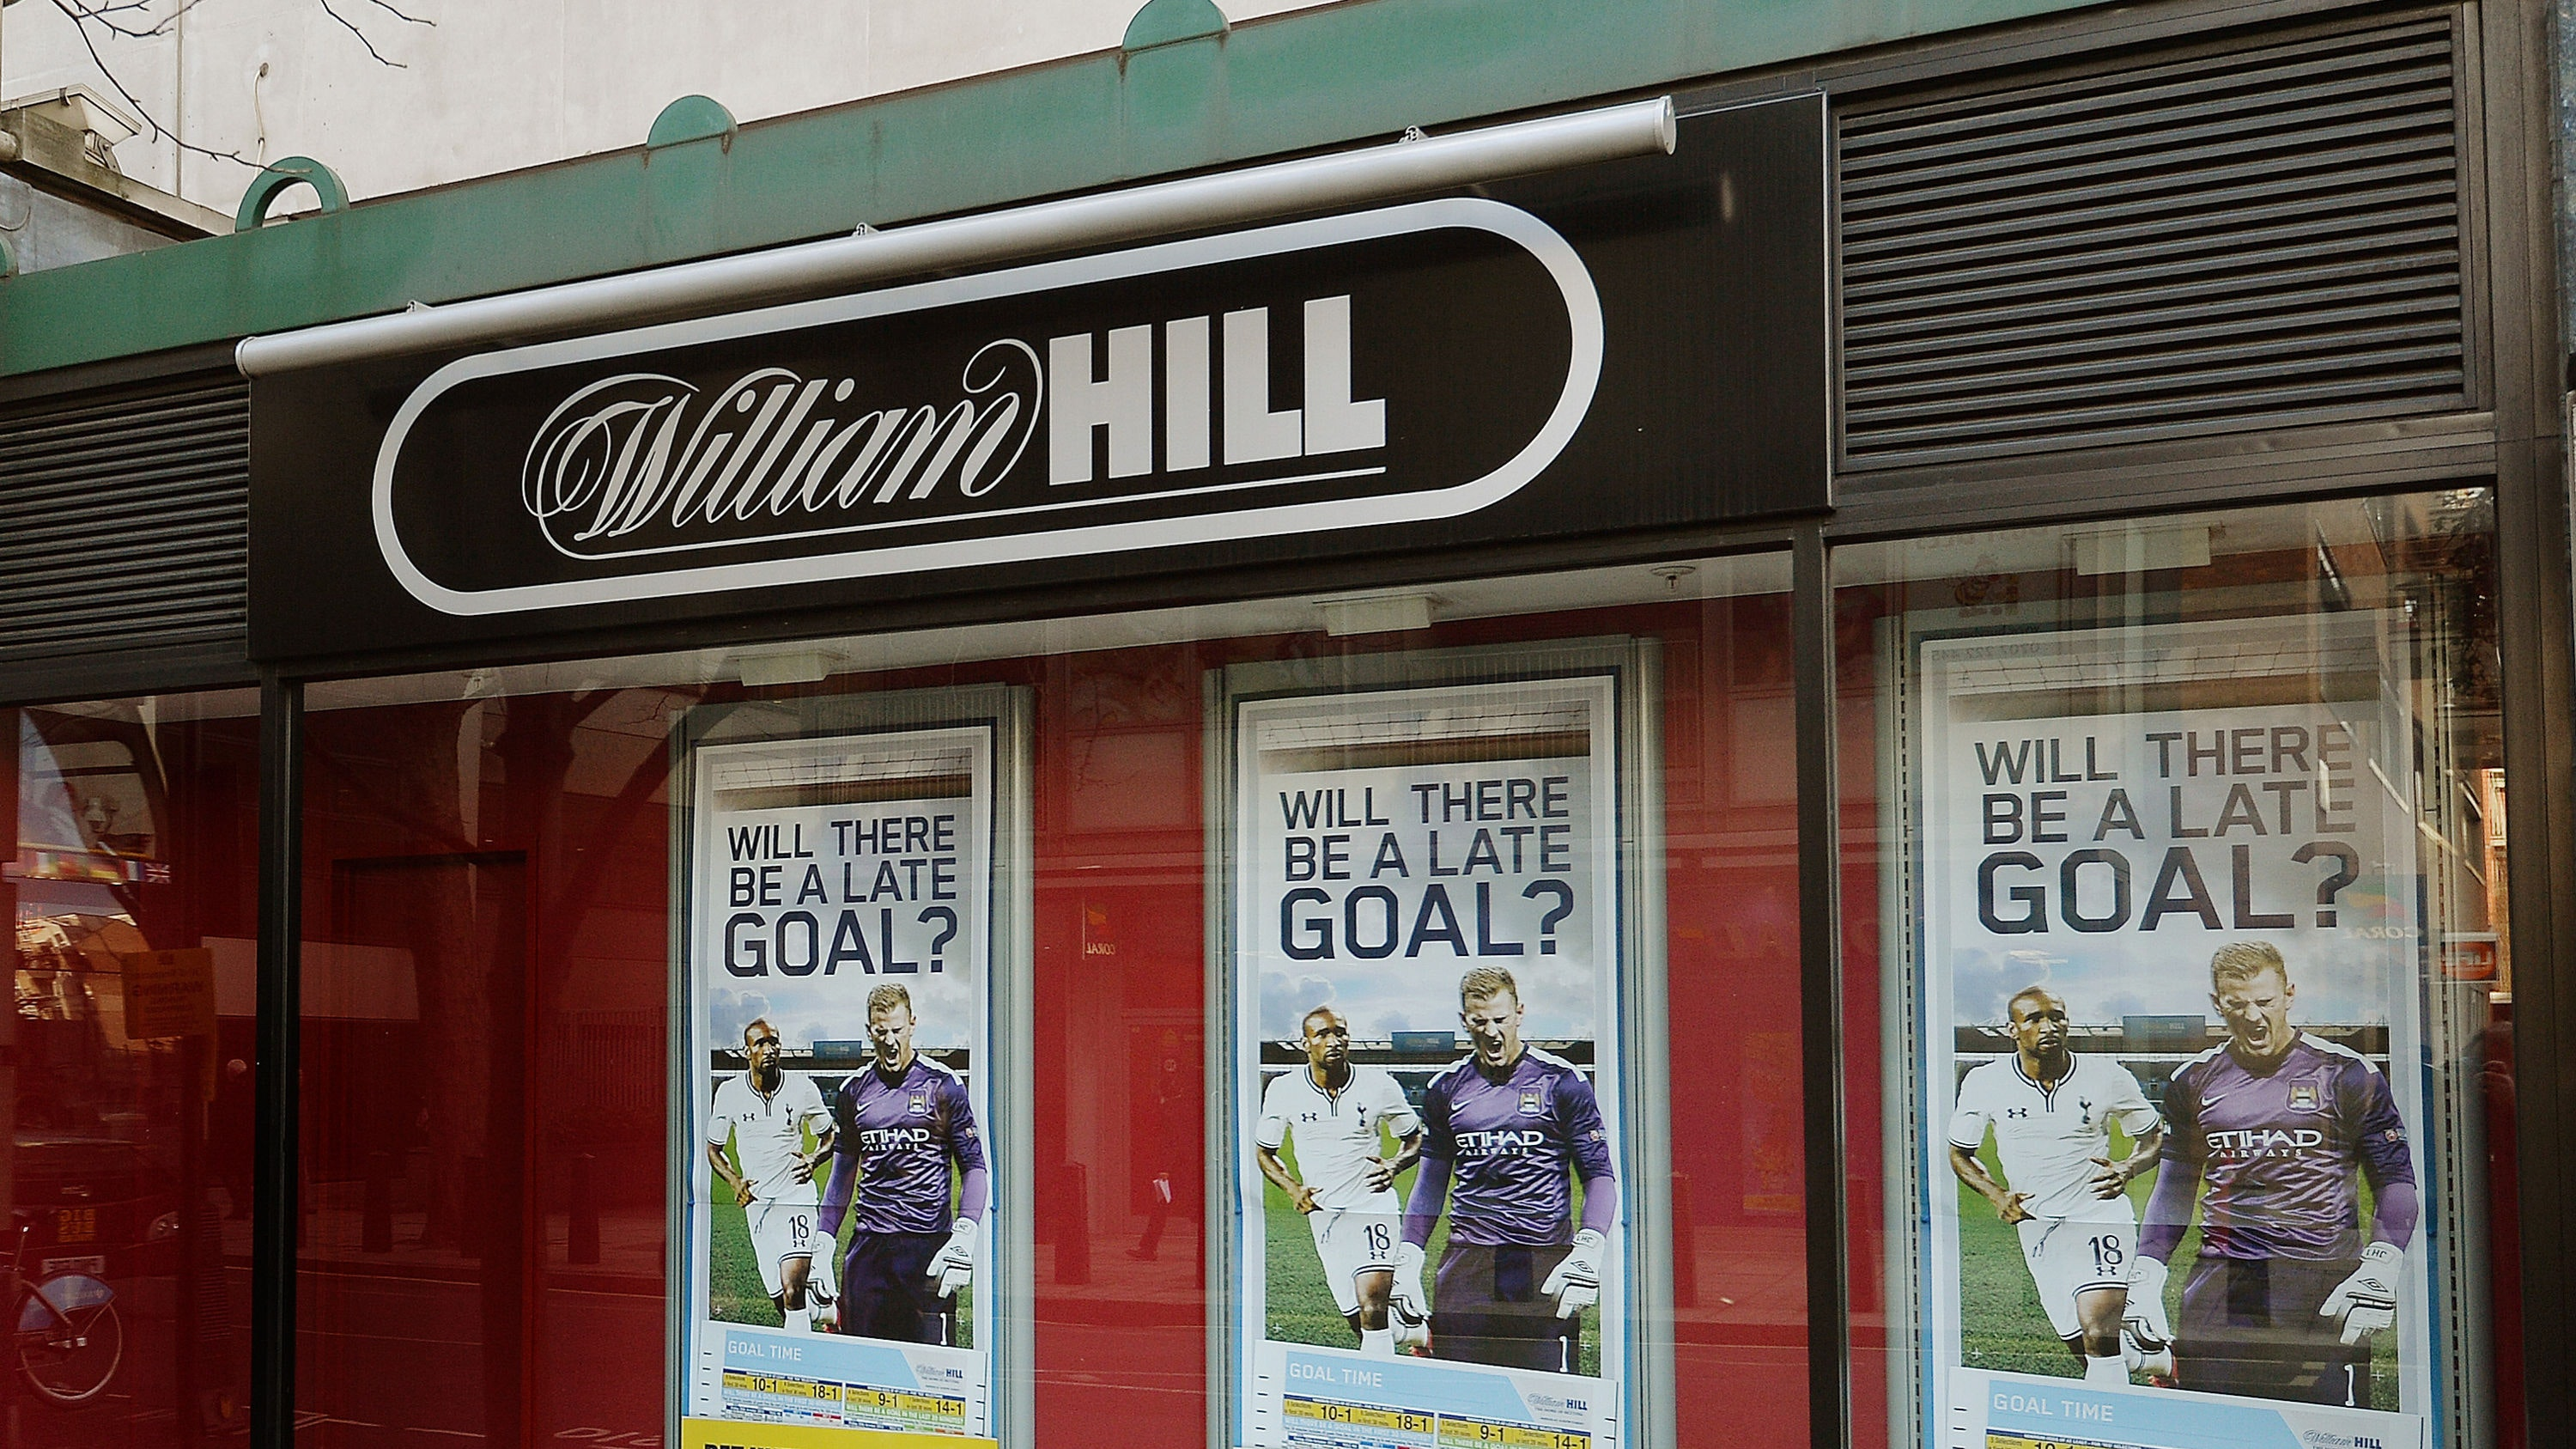 William Hill pleased with adjusted results and outlook